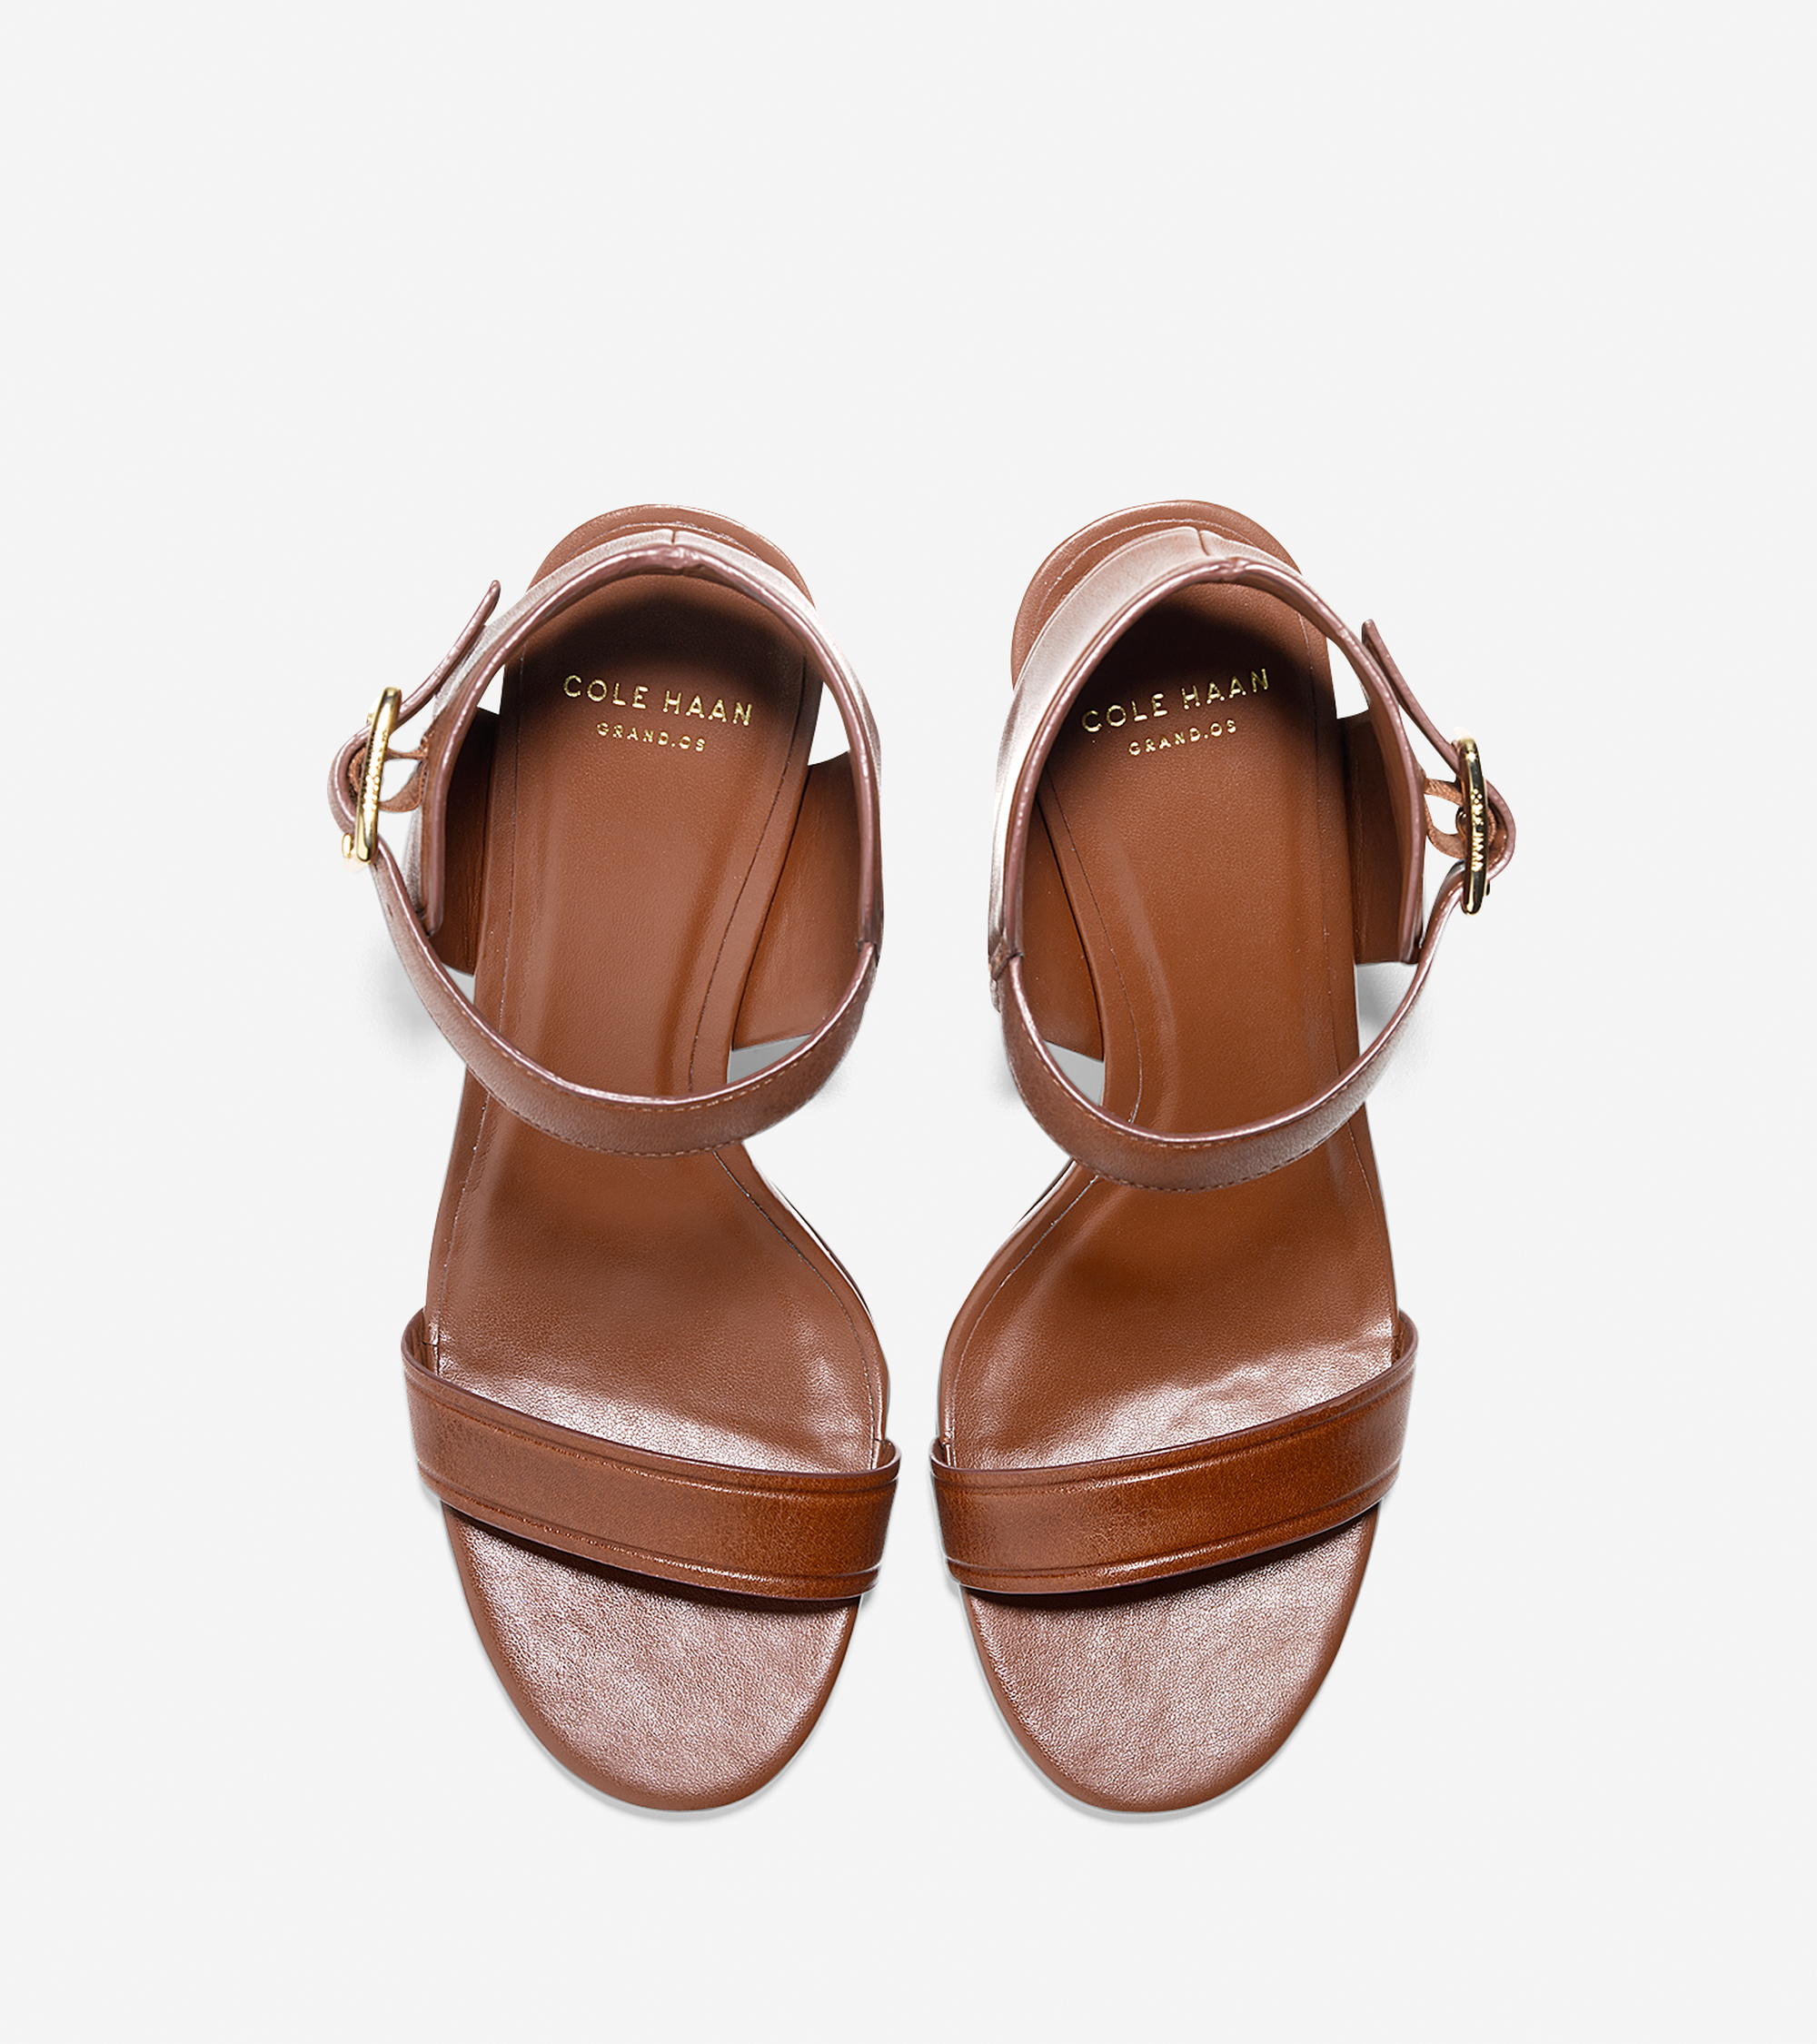 cole haan shoes ladies latest sandals and shoes 696258